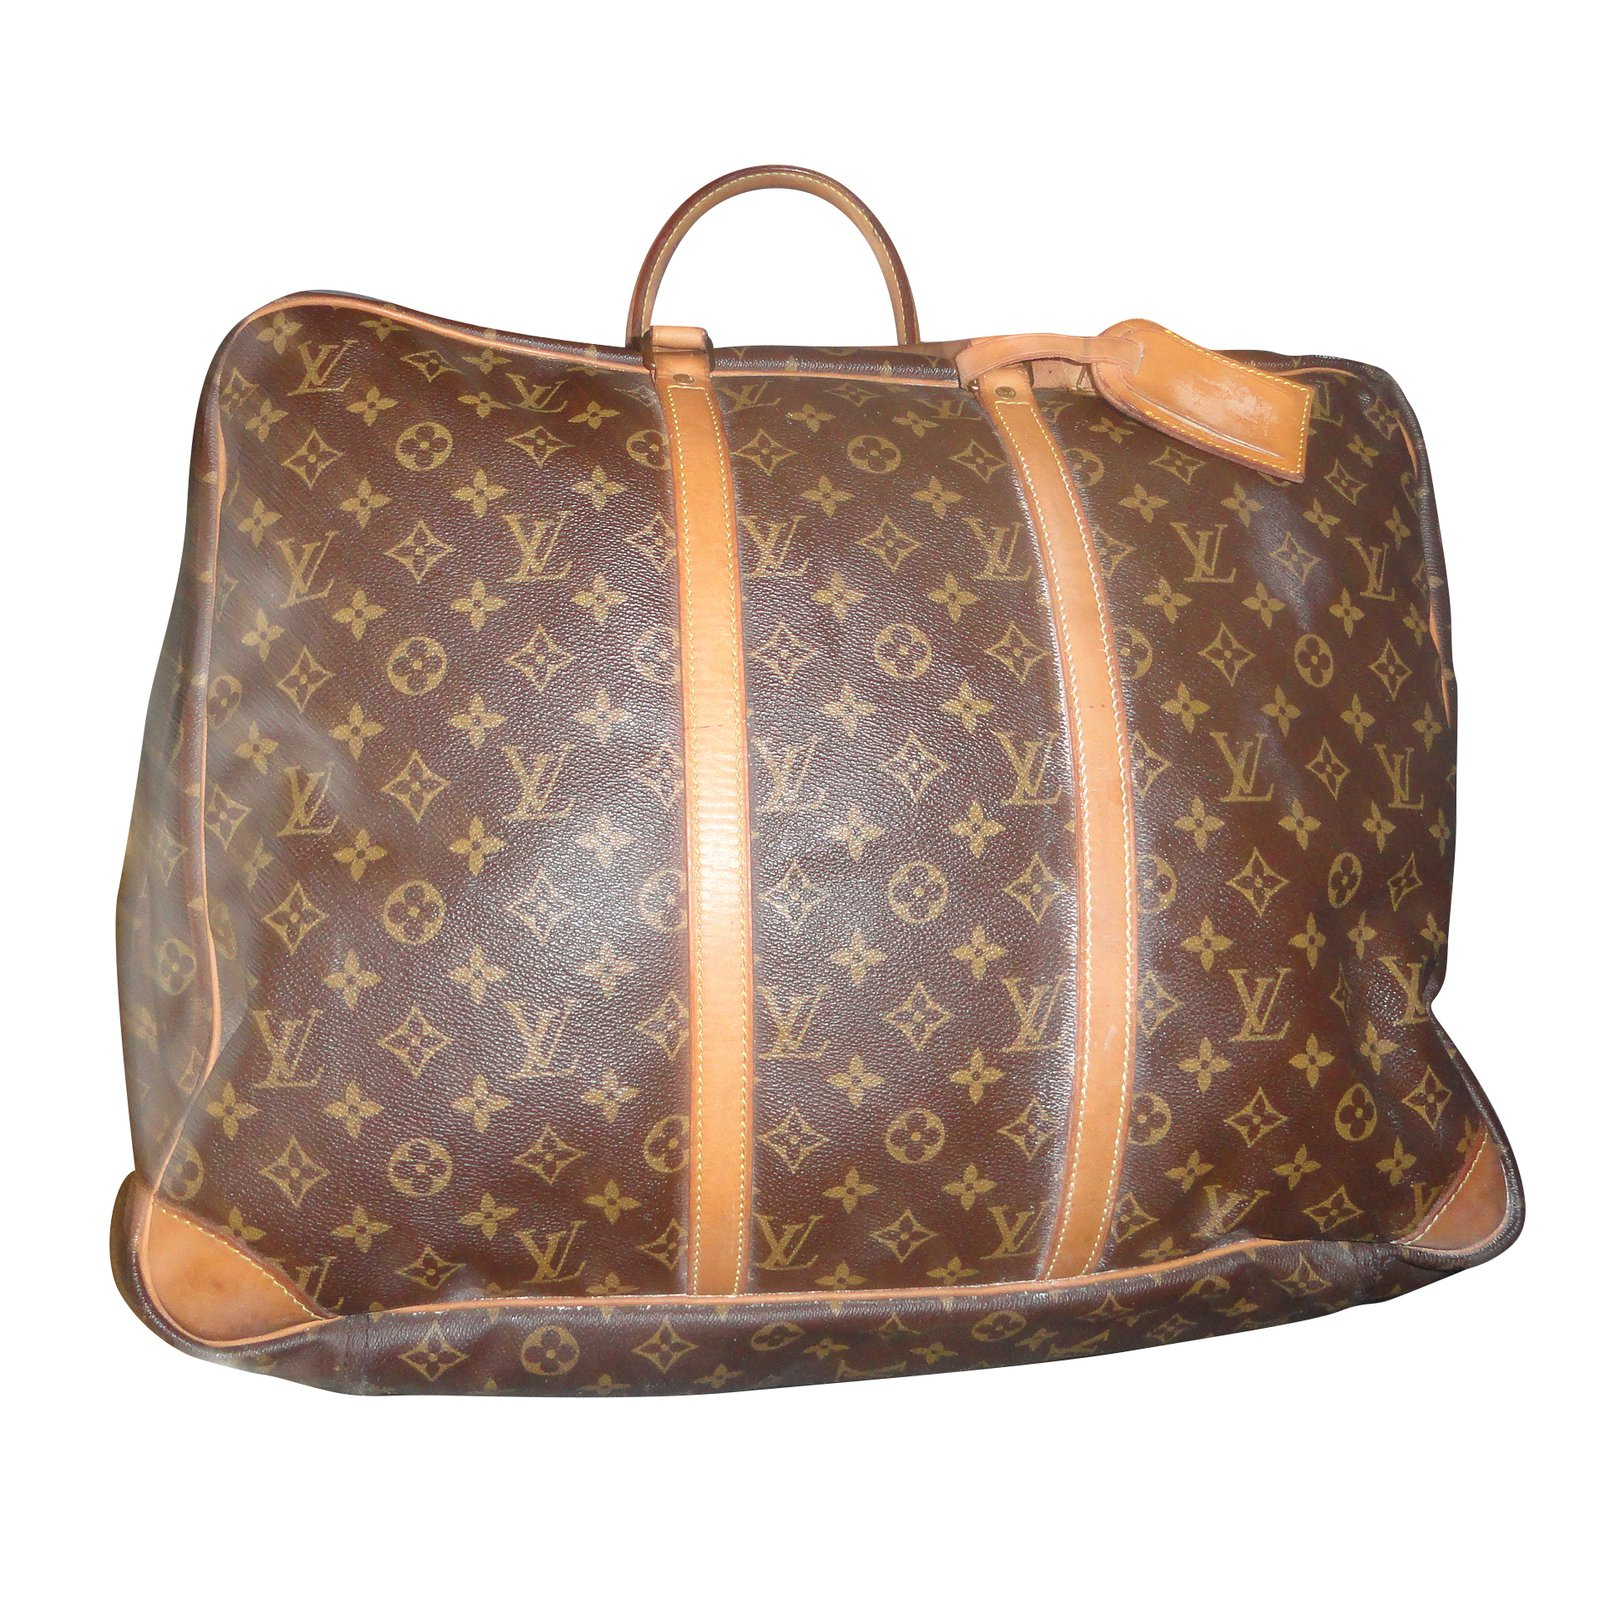 sacs de voyage louis vuitton sac valise souple synth tique multicolore joli closet. Black Bedroom Furniture Sets. Home Design Ideas